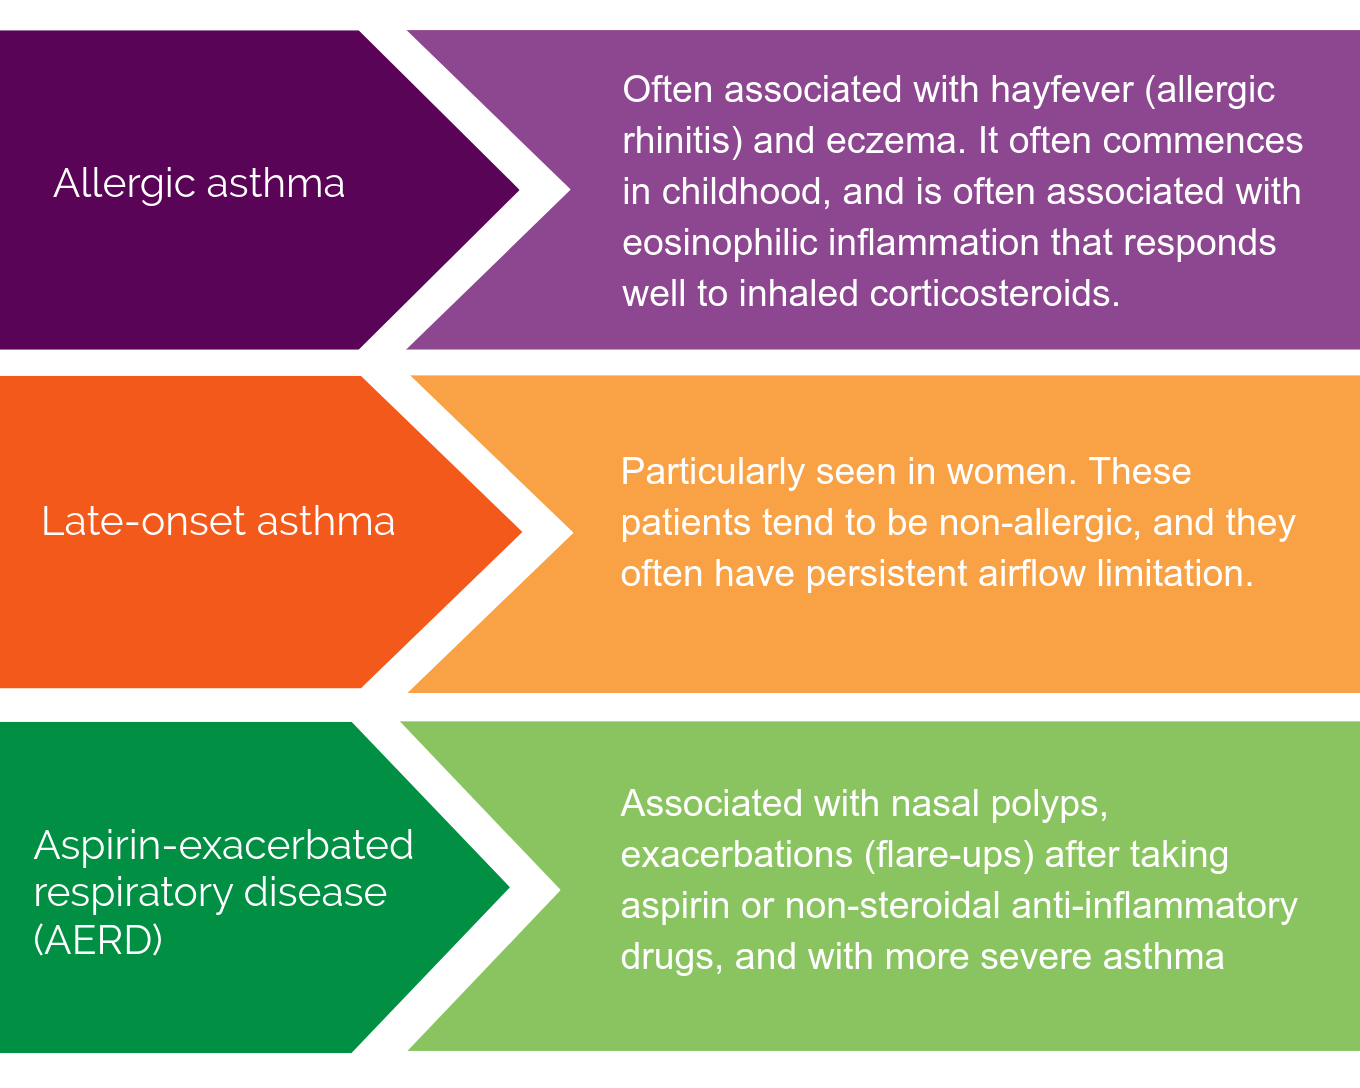 Examples of clinical asthma phenotypes table, allergic asthma, late onset asthma